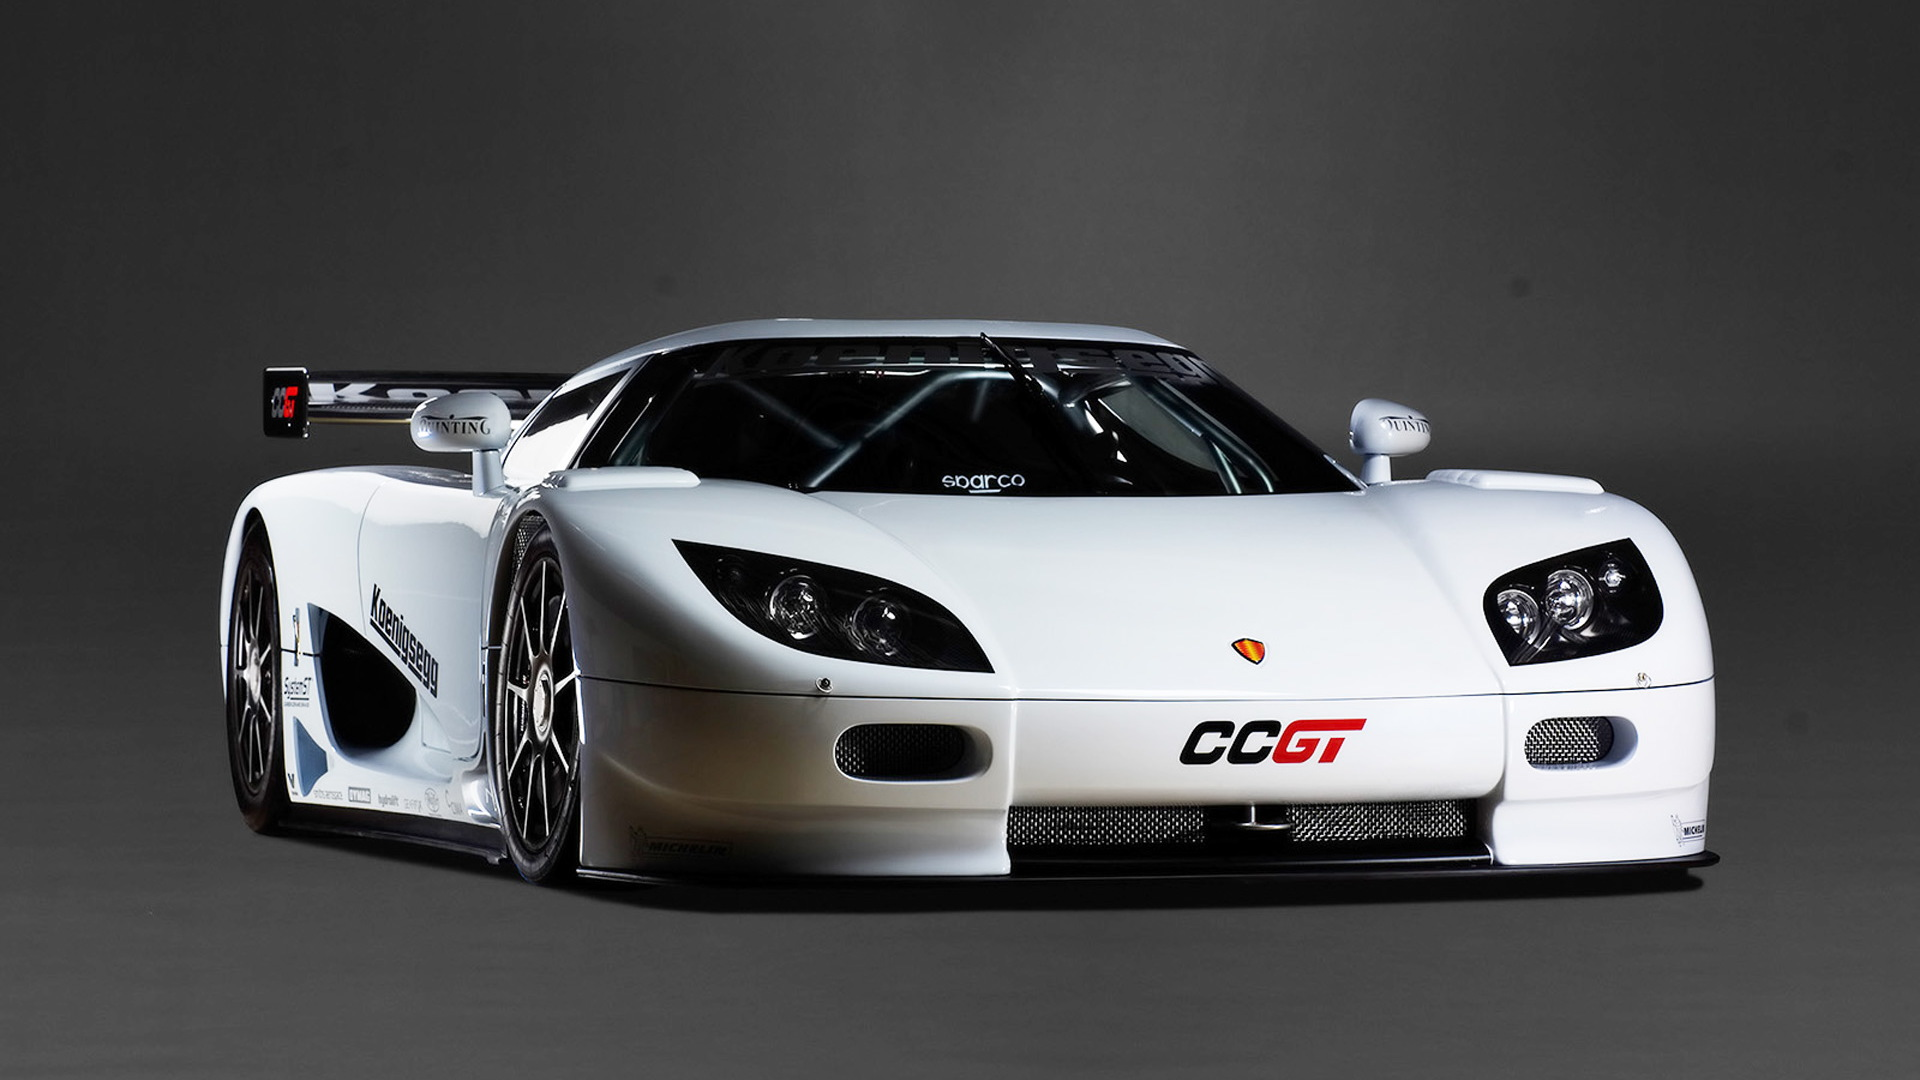 2007 Koenigsegg CCGT race car prototype